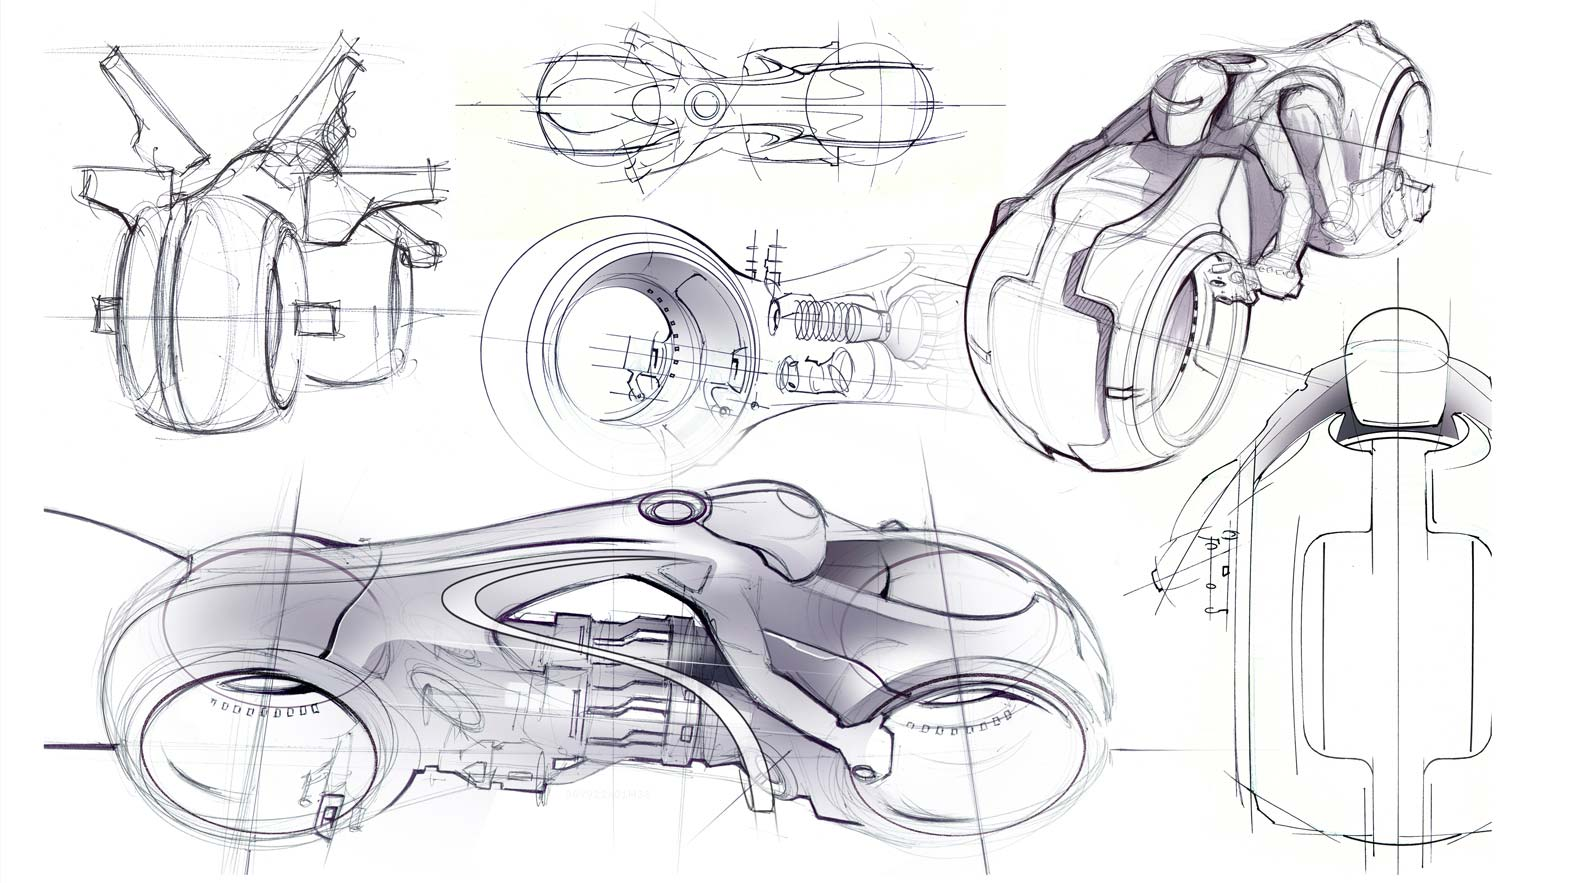 Daniel Simon Talks On The Tron Legacy Lightcycle Design